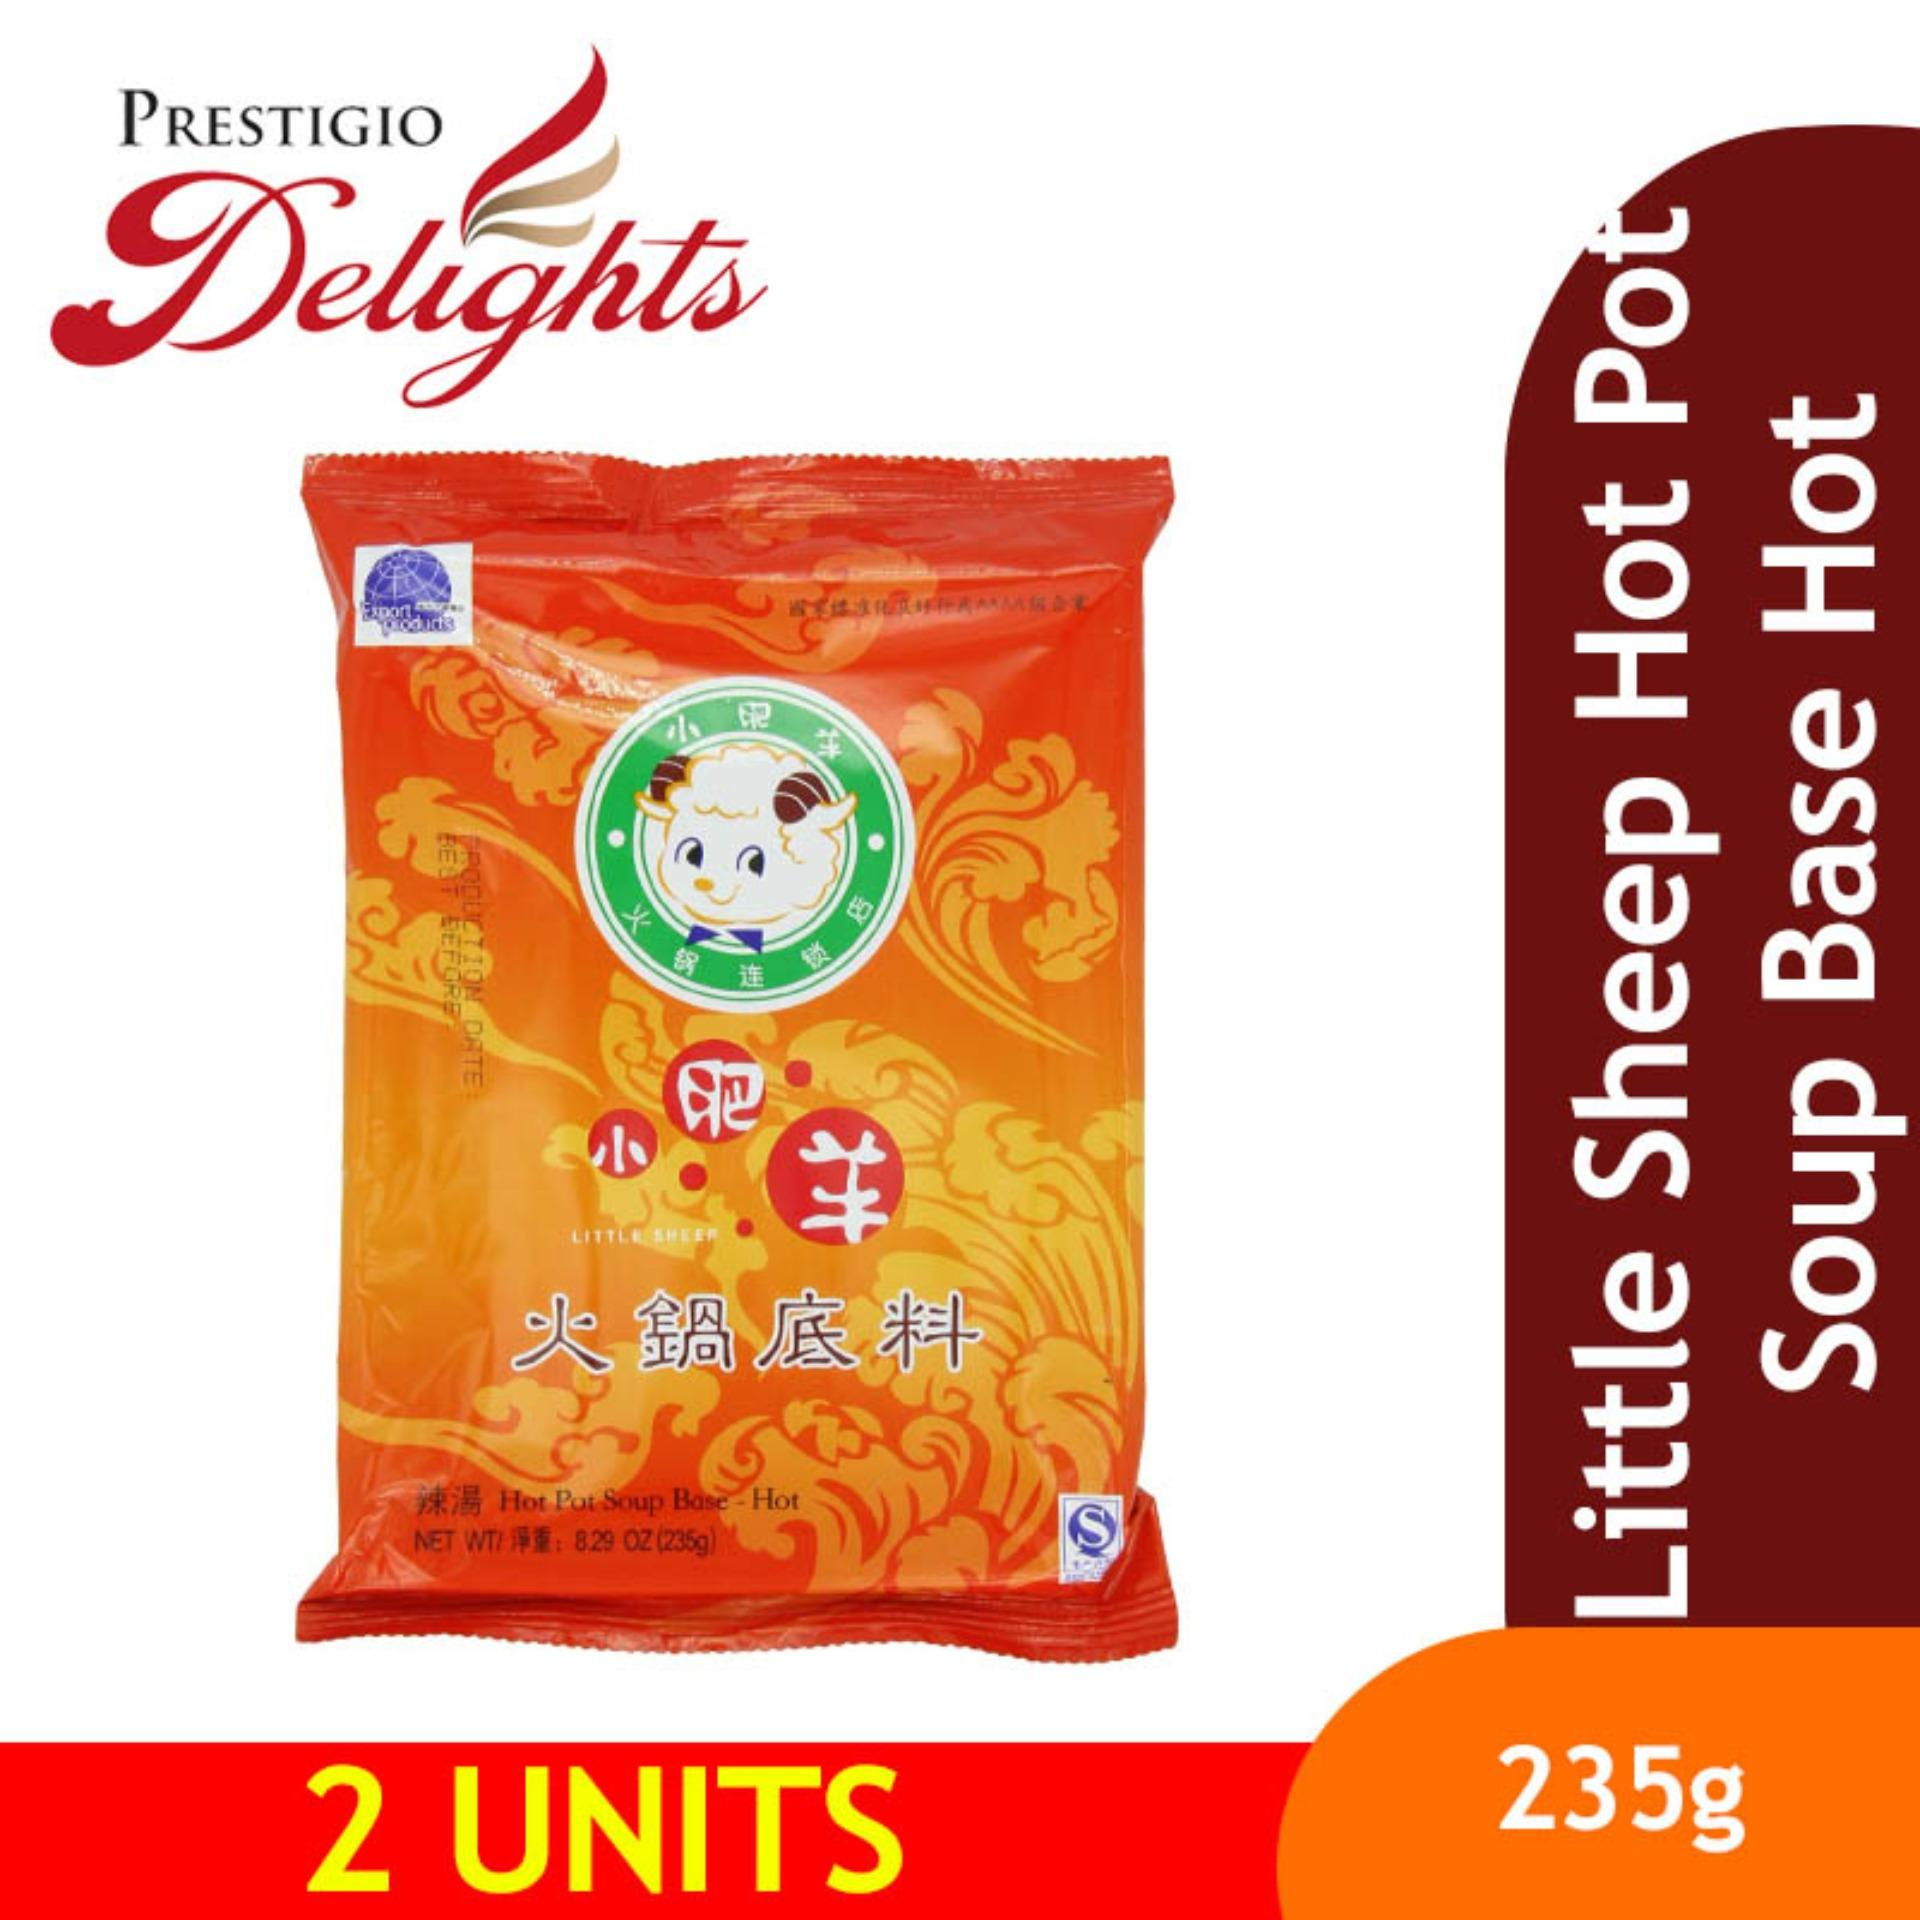 Little Sheep Hot Pot Soup Base Hot 235g Bundle Of 2 By Prestigio Delights.